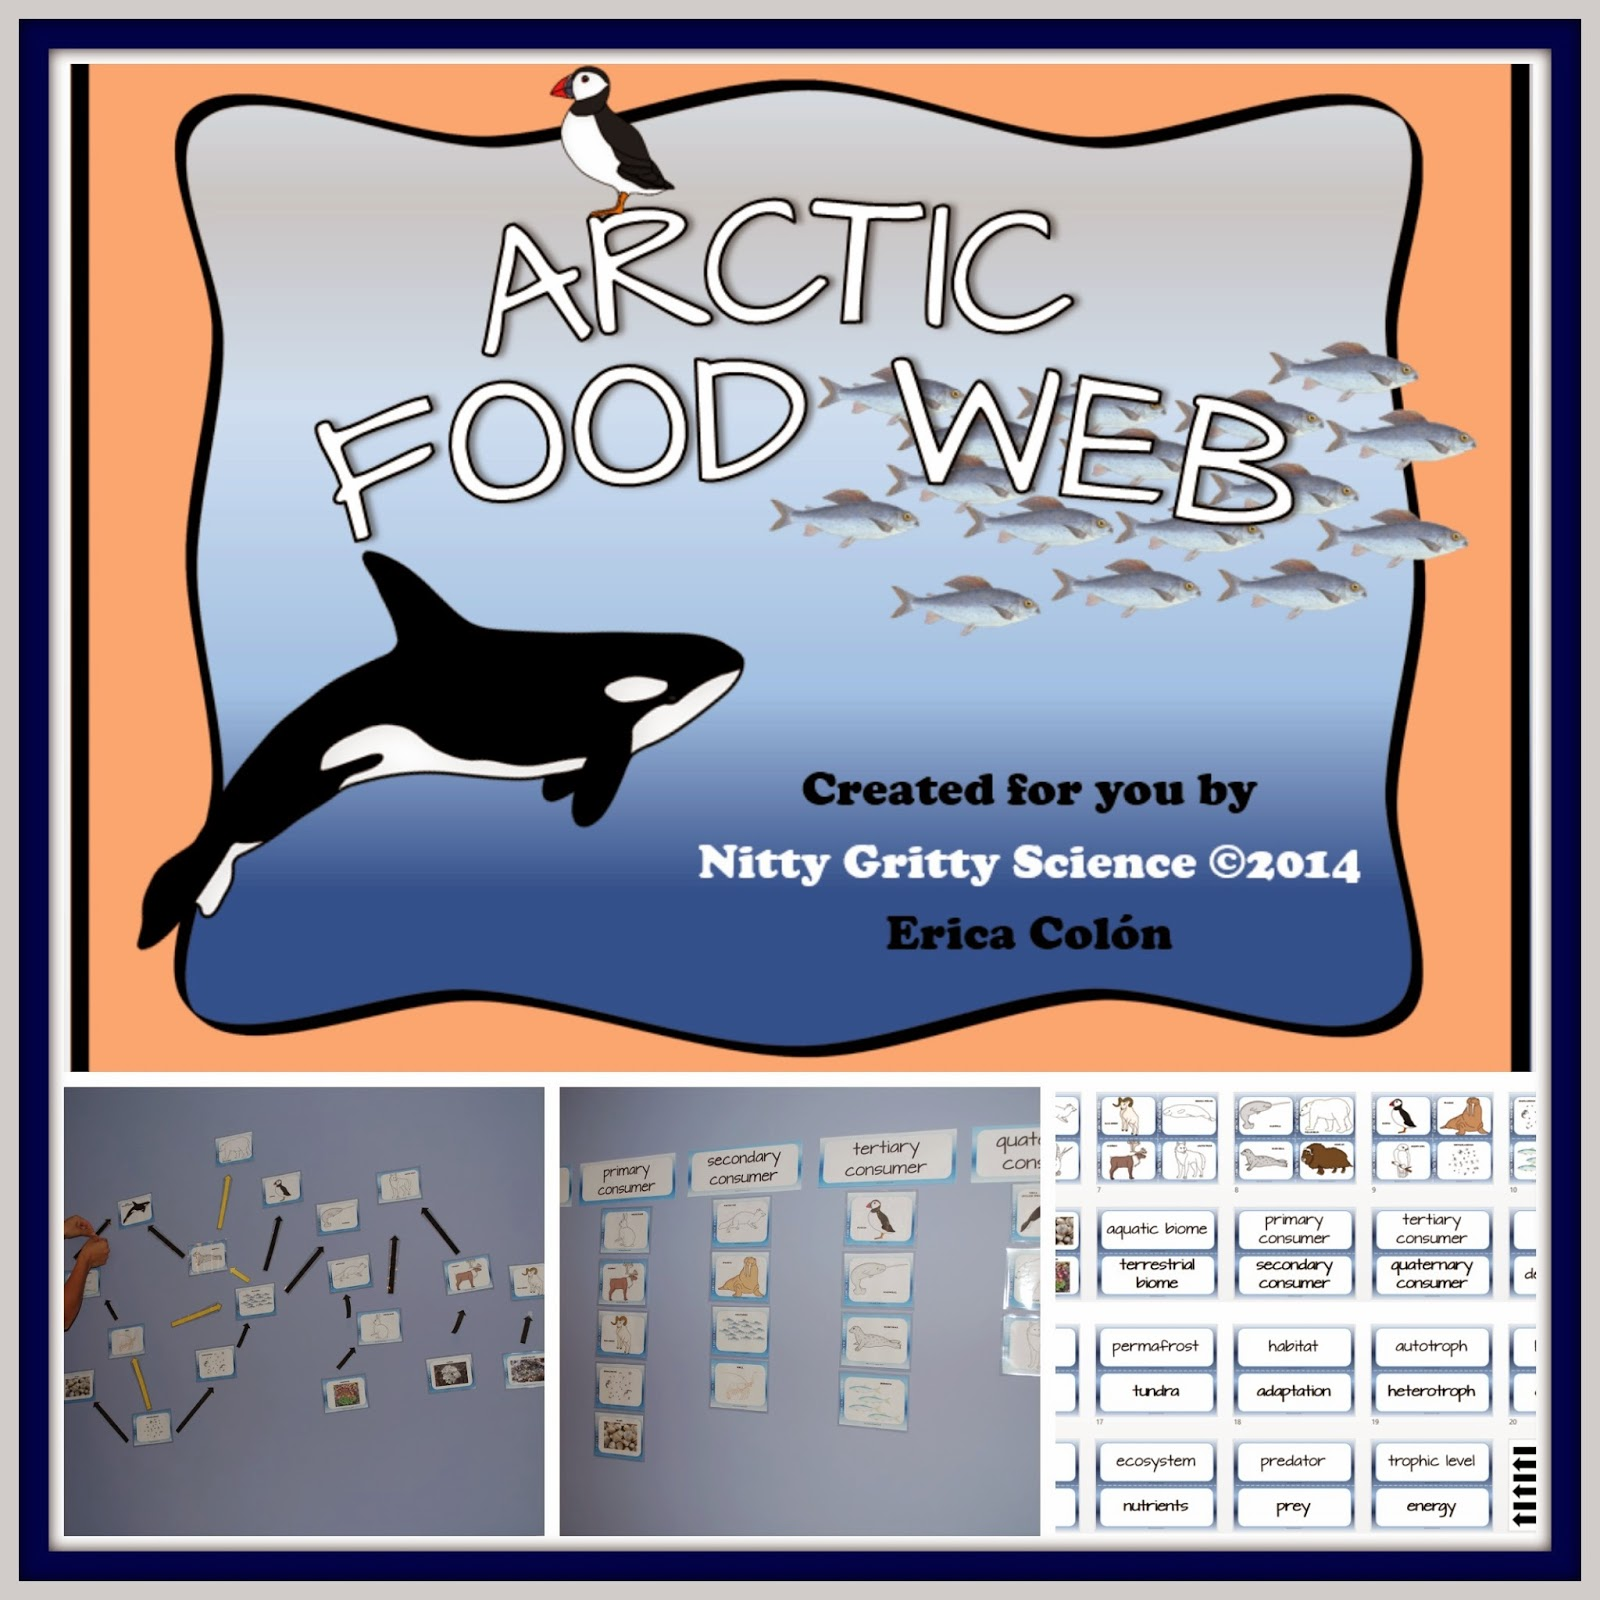 Nitty Gritty Science Arctic Food Web